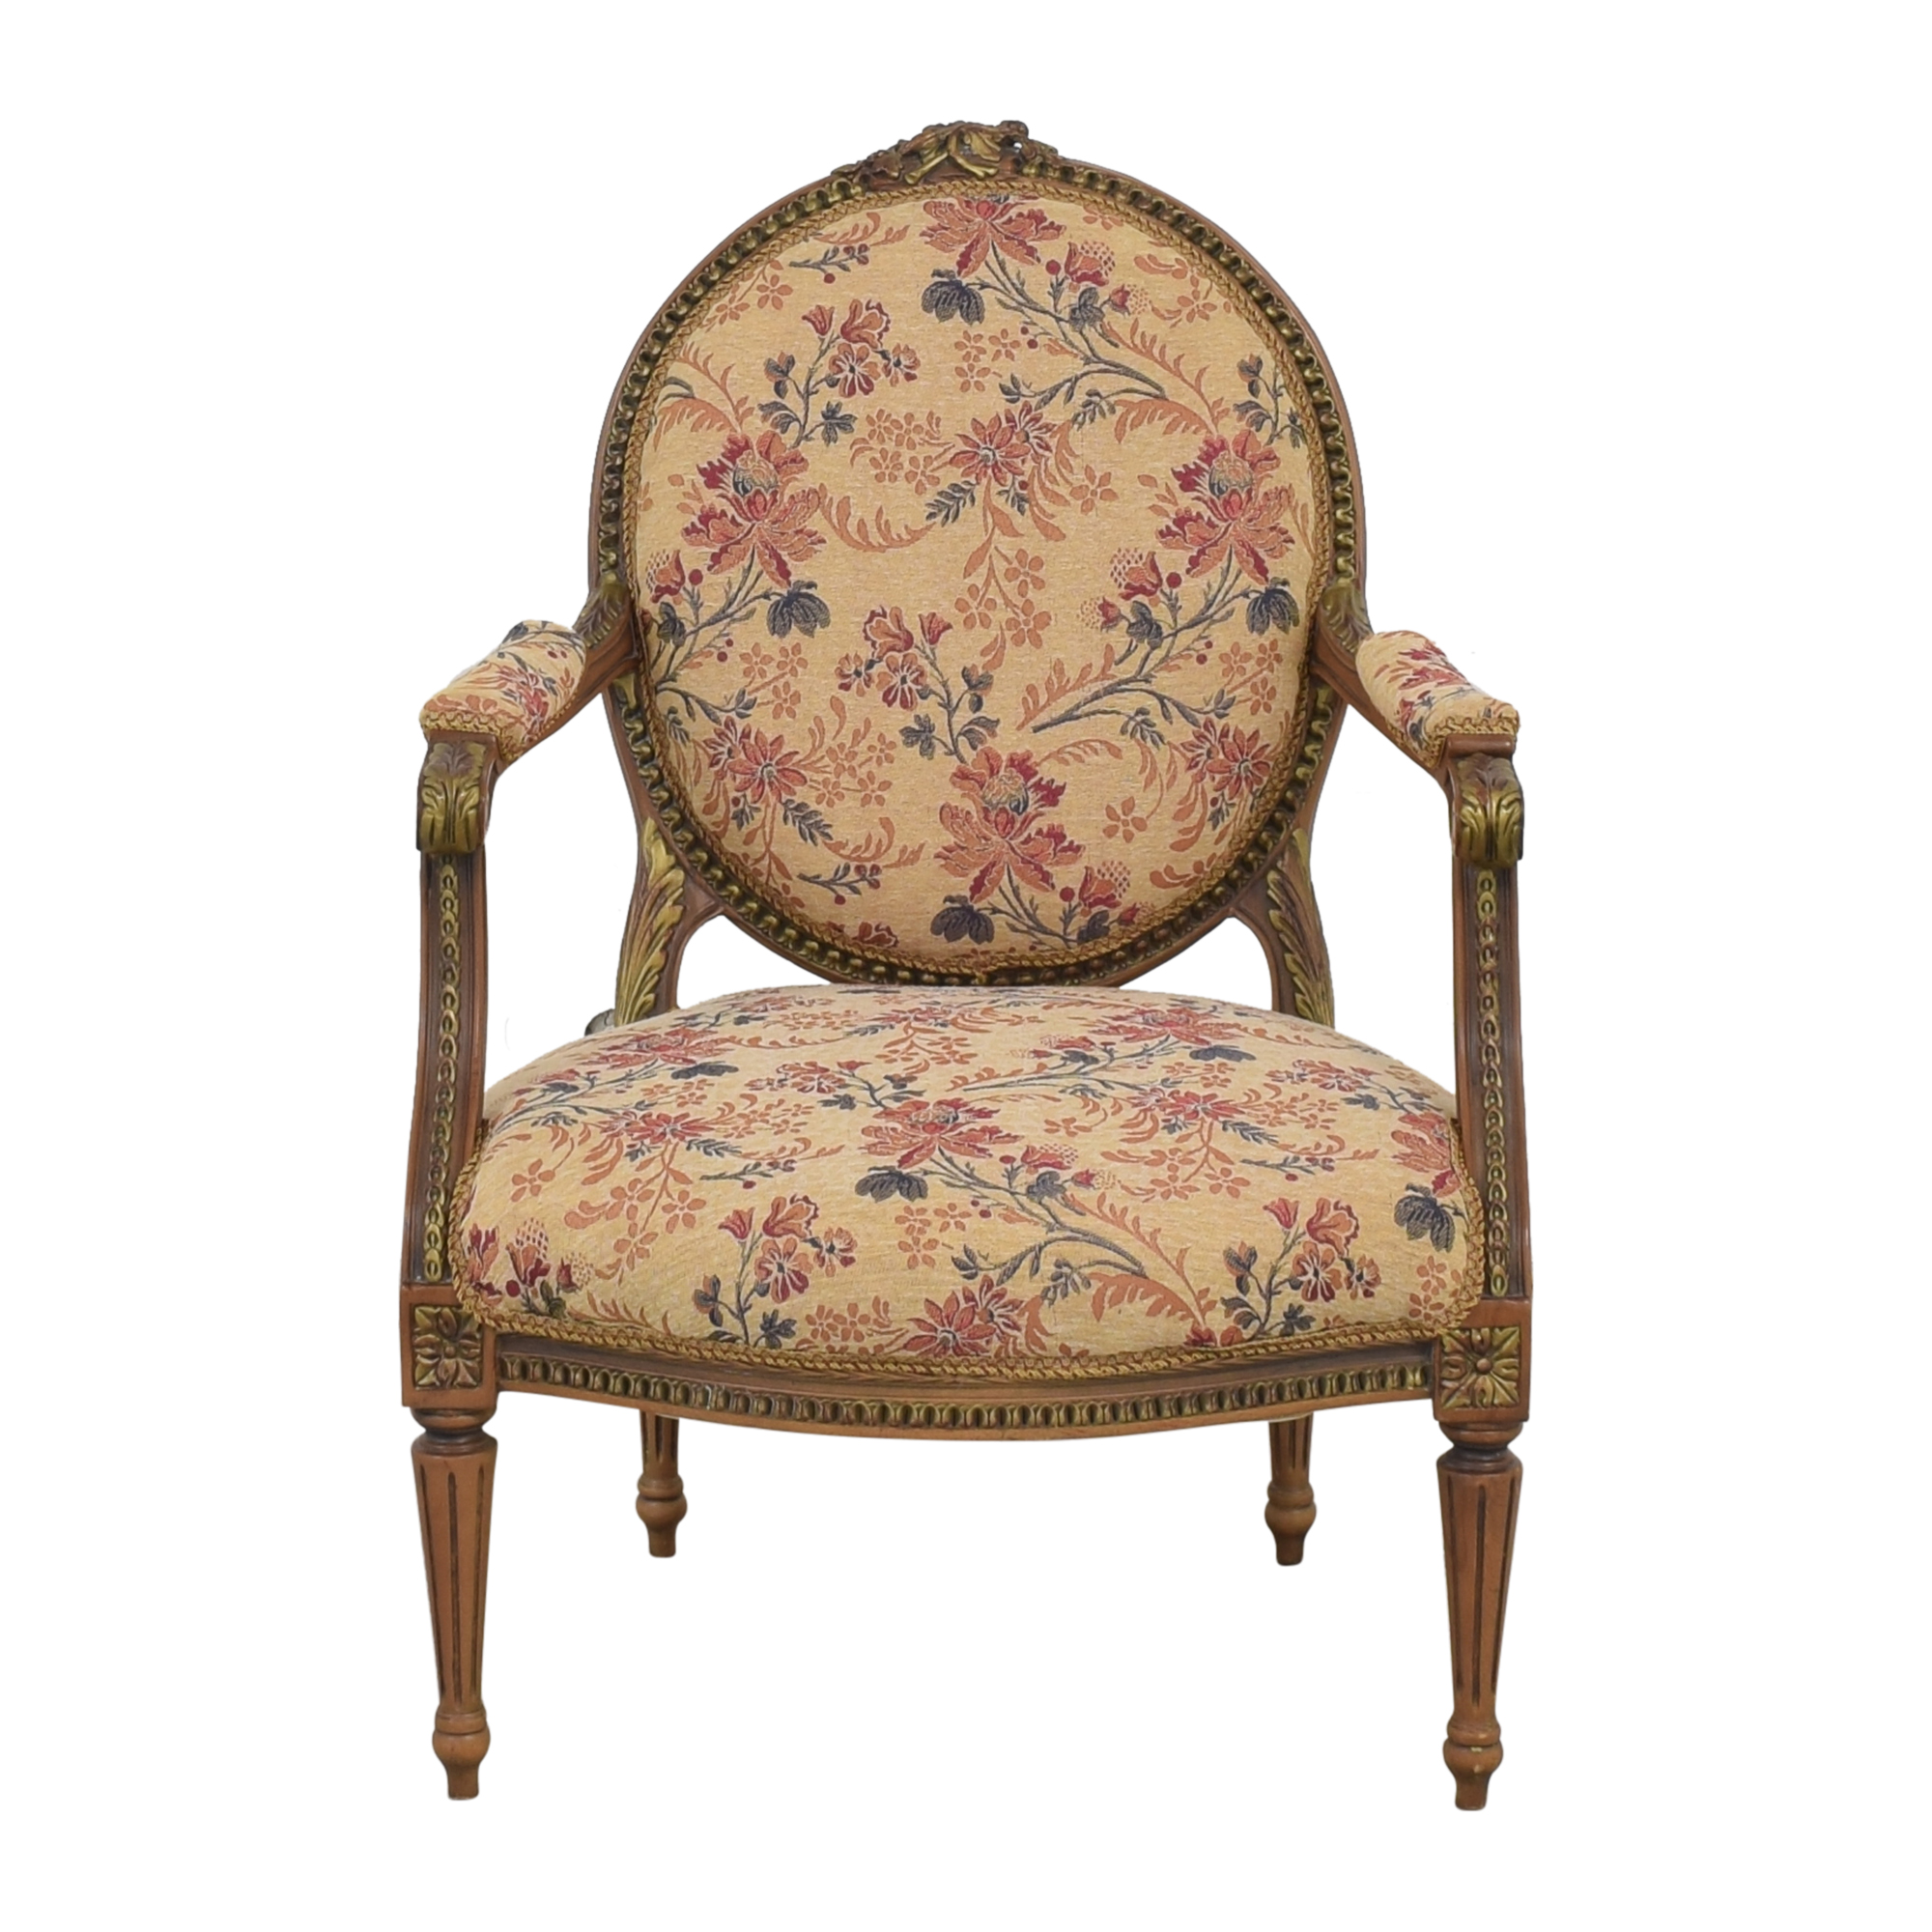 Custom Floral Upholstered Accent Chair dimensions